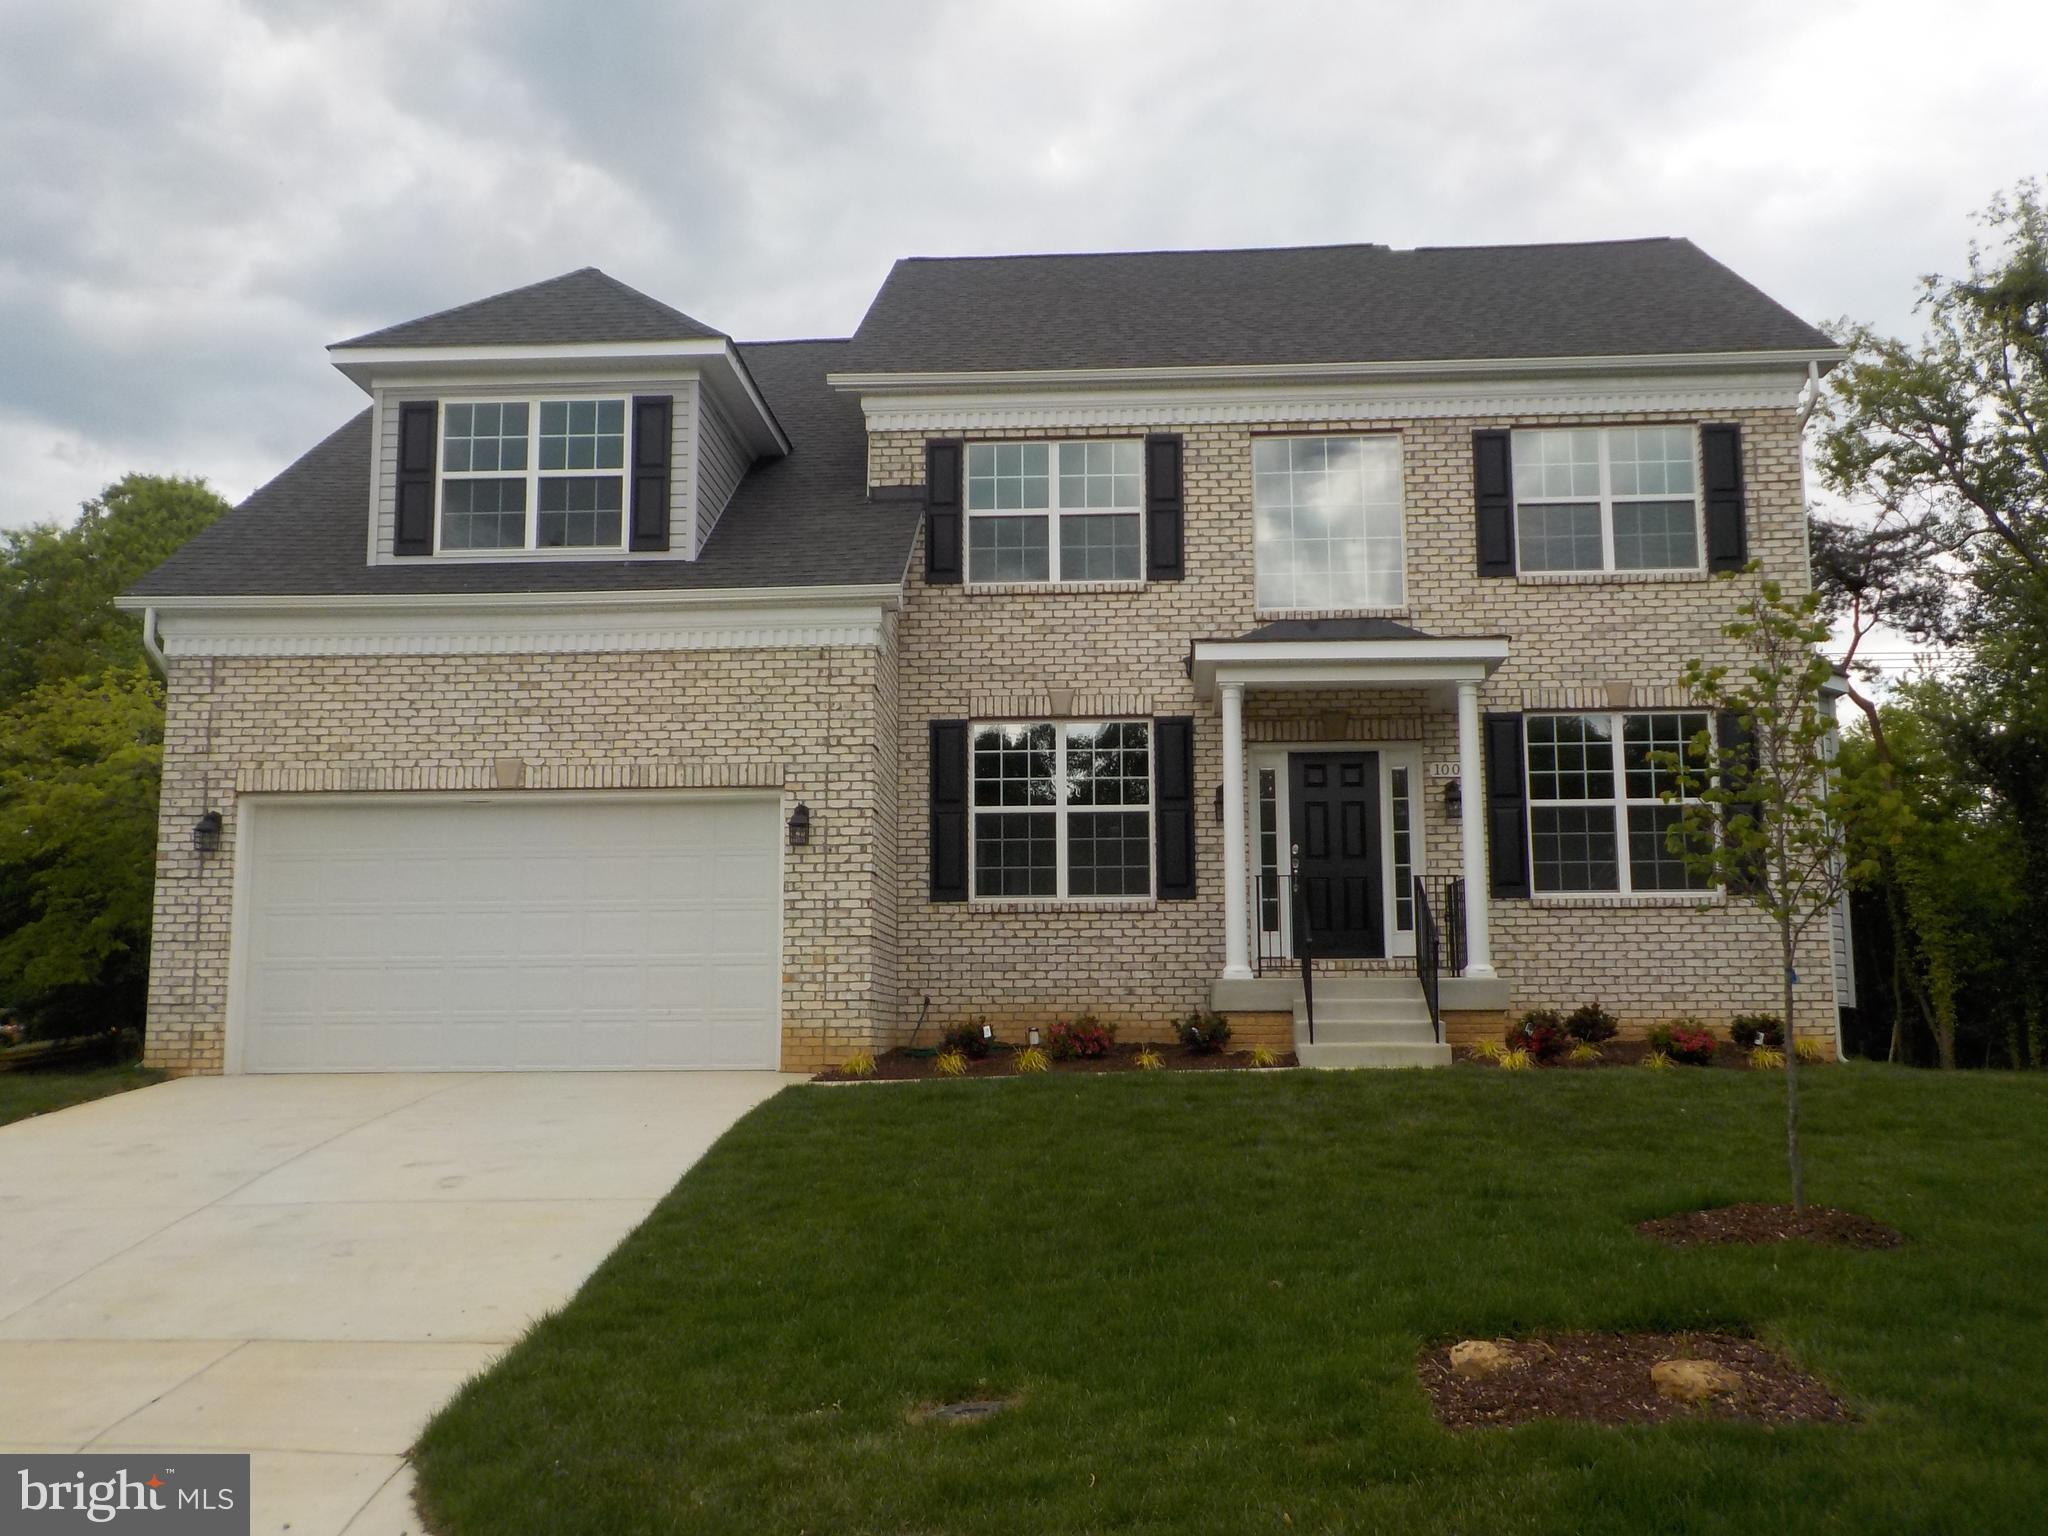 BRAND NEW HOME IN TANTALLON ON THE POTOMAC! LOCATED IN A CUL DE SAC! 6 BEDROOMS, 3.5 BATHS! 2 CAR GARAGE FULL FINISHED BASEMENT! 10 YEAR WARRANTY! FINISHED AND USE AND OCCUPANCY IN HAND! SUBJECT TO RELEASE,